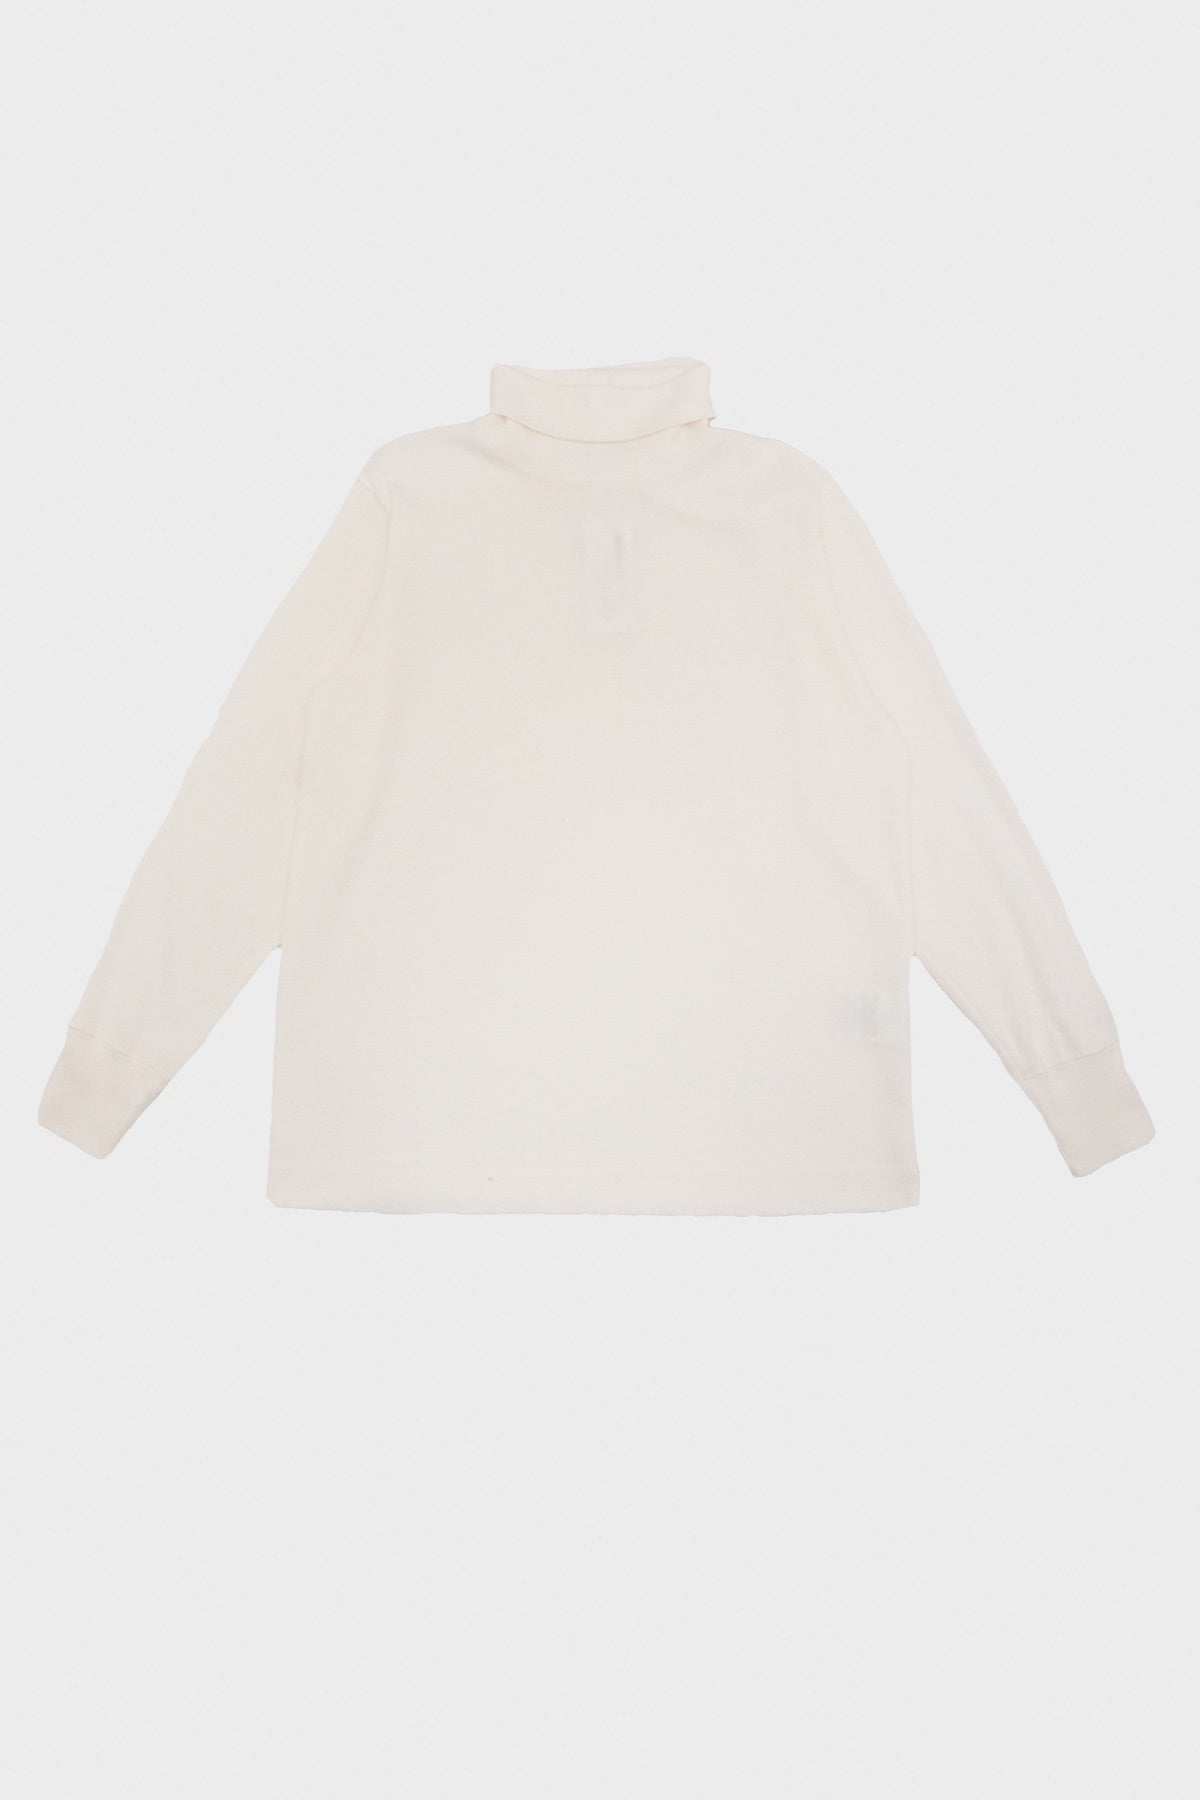 nanamica Turtle Neck Long Sleeve Tee - Off White